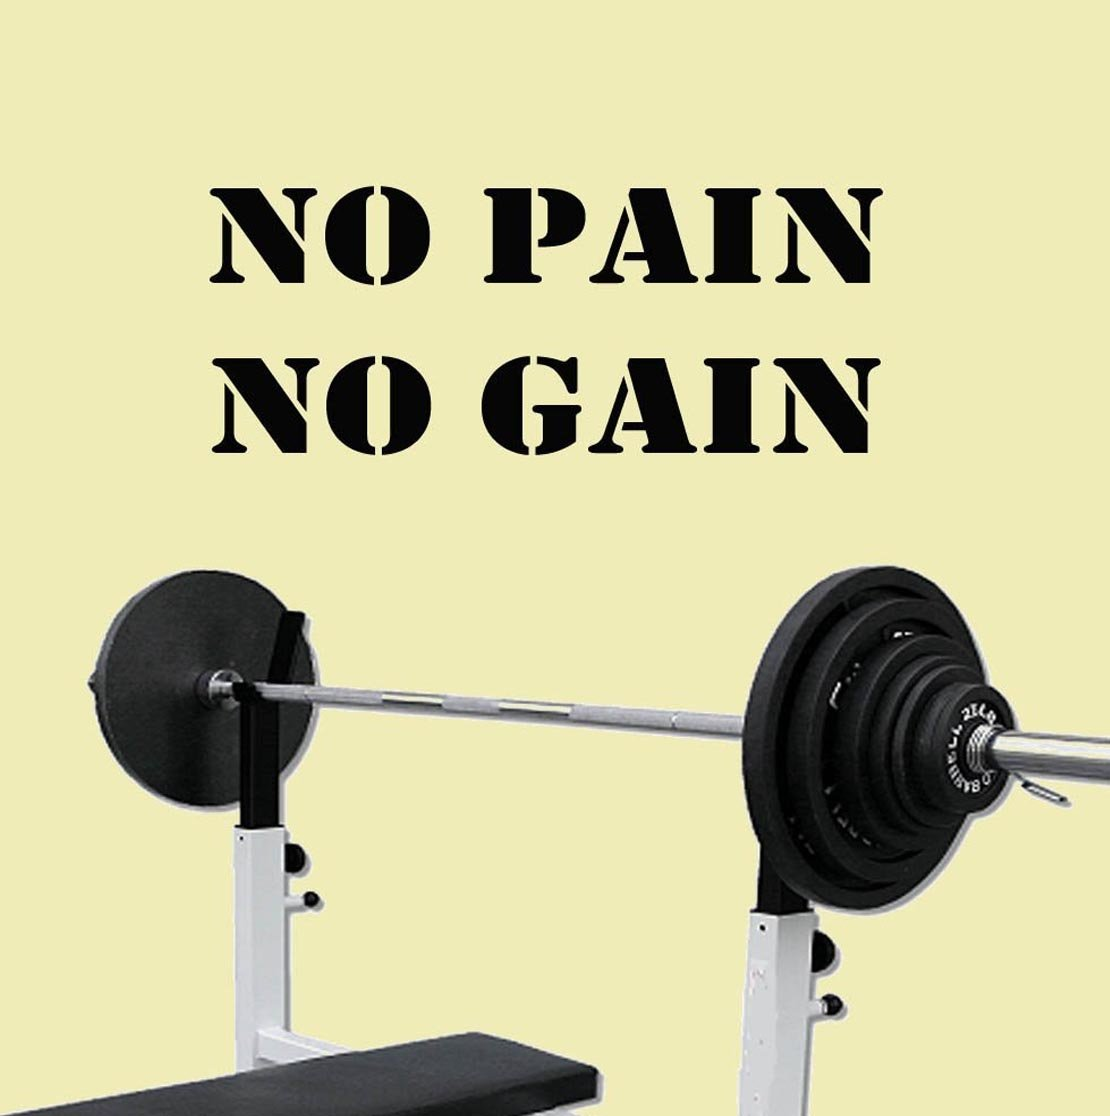 Amazon.com: No Pain No Gain Exercise Workout Gym Health and ...